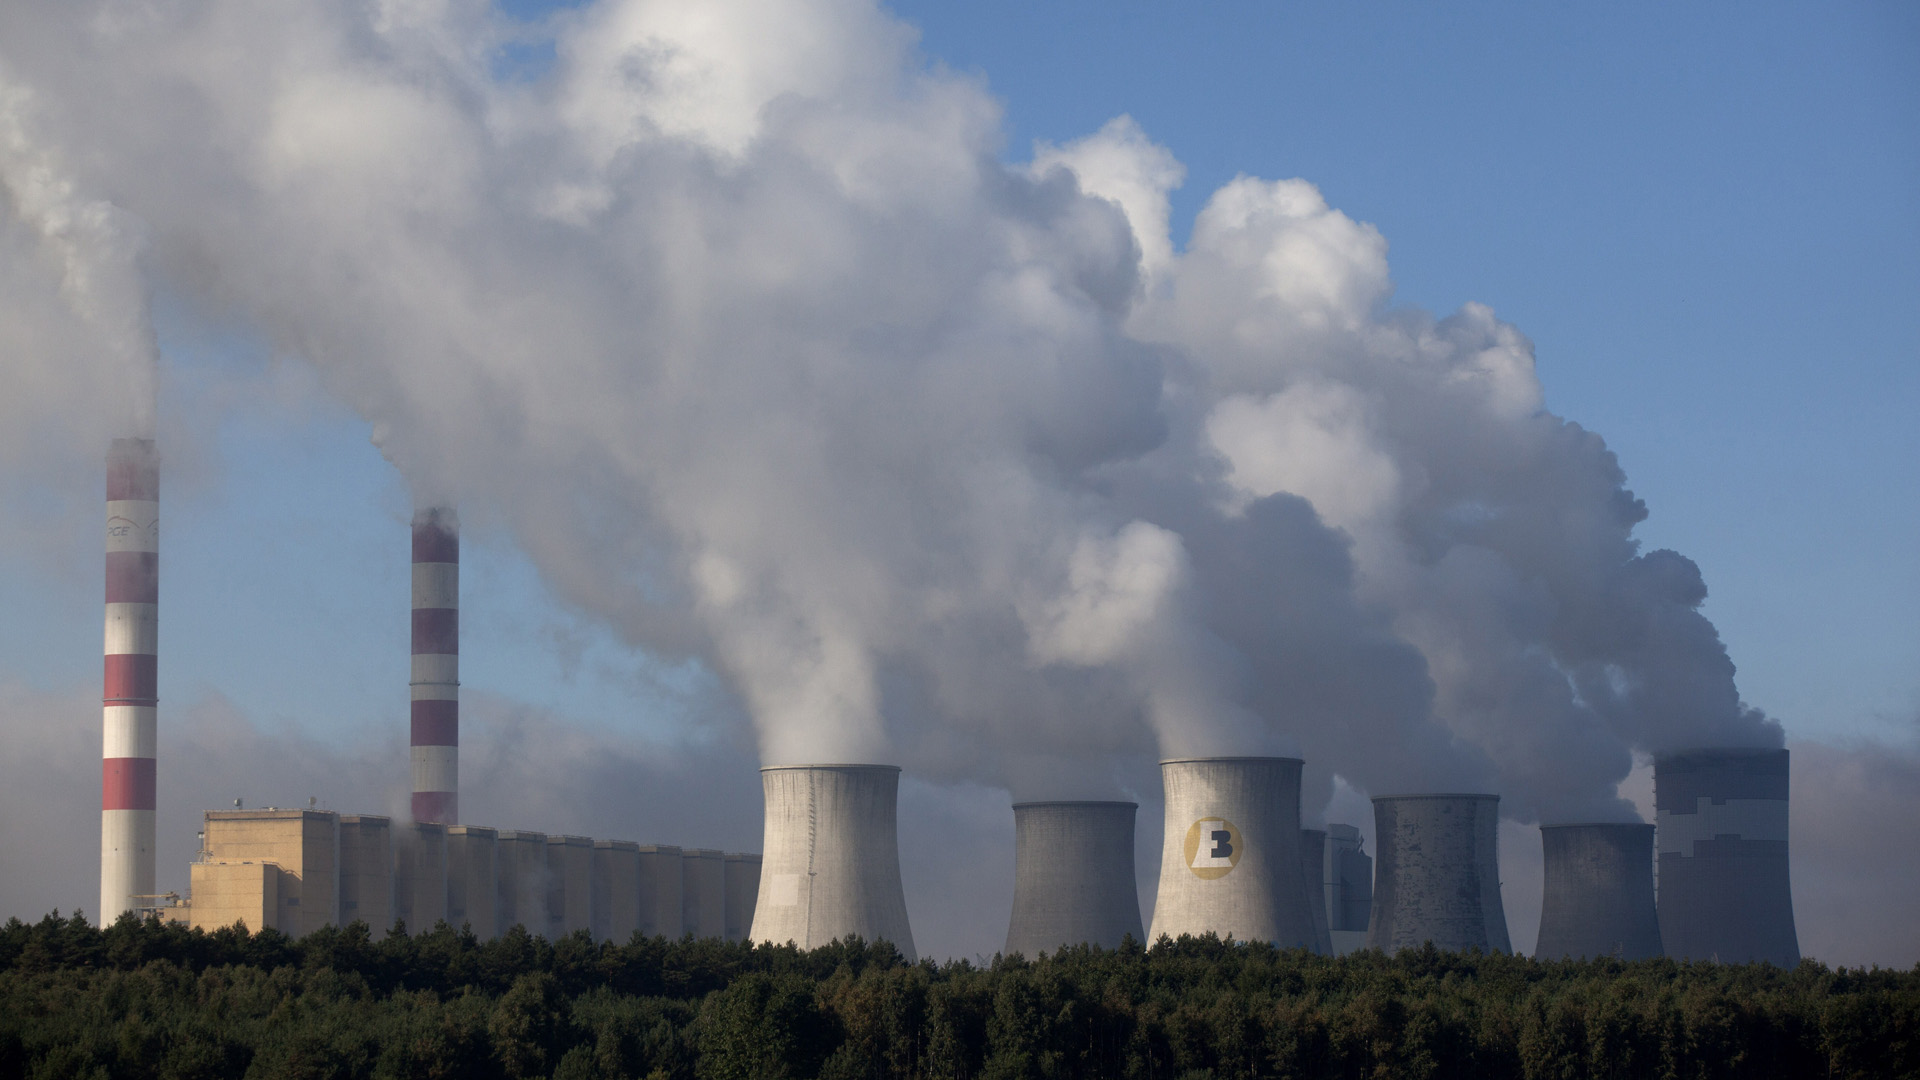 The Belchatow power plant is seen on Sept. 28, 2011 in Belchatow, near Lodz central Poland. (Credit: Darek Redos/AFP/Getty Images)